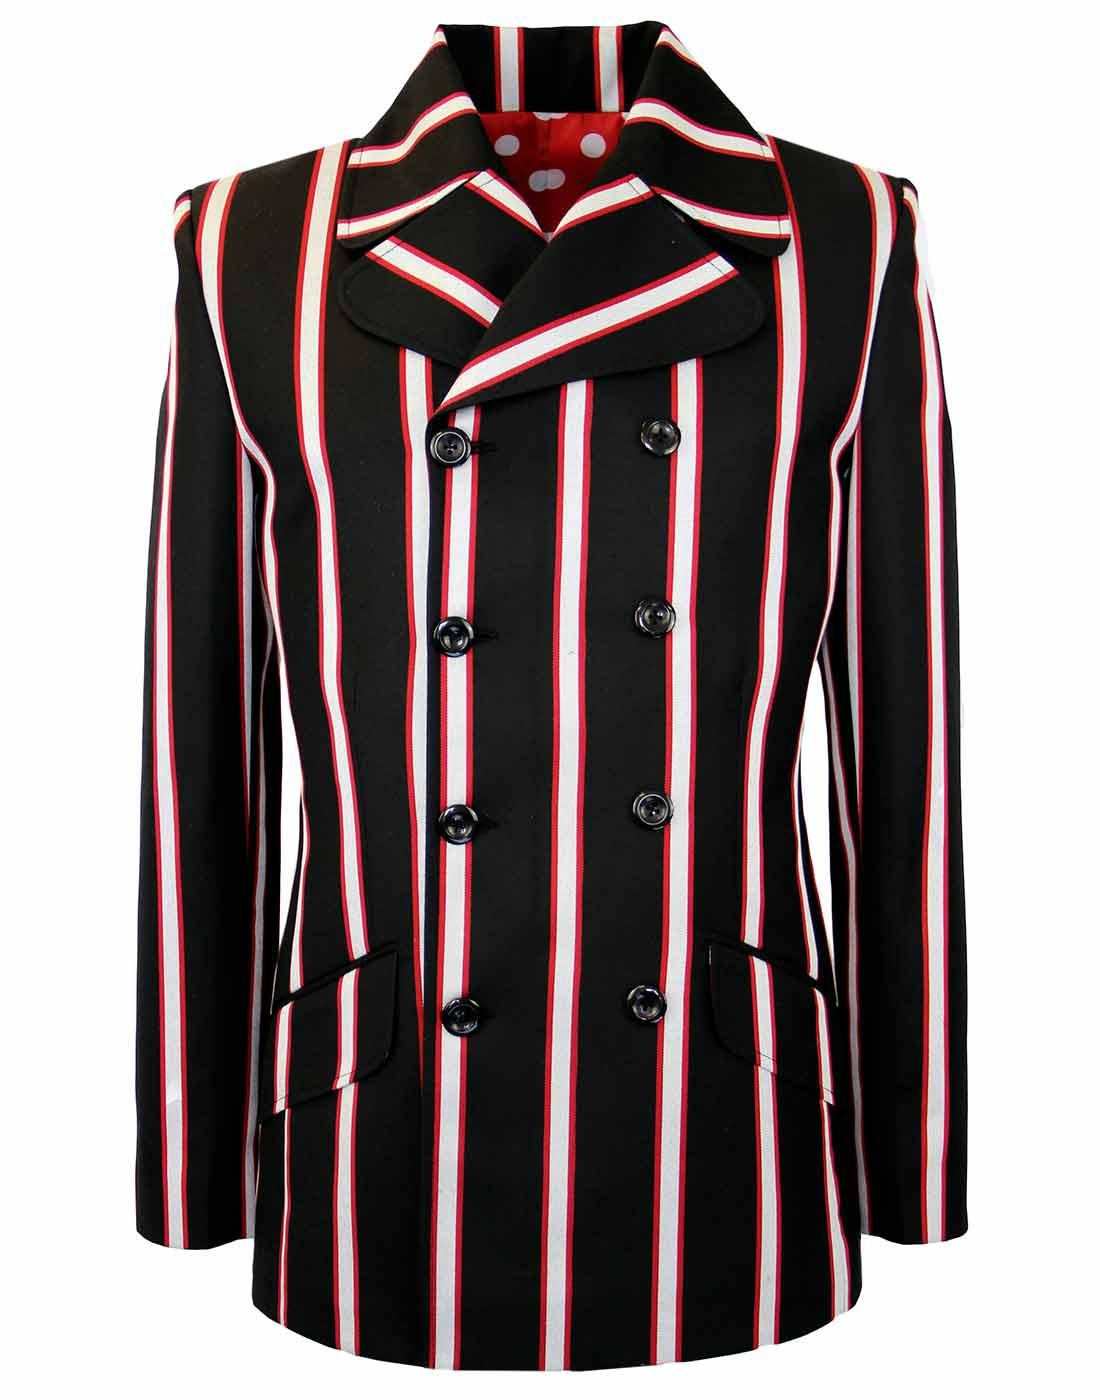 Howl MADCAP Double Breasted Retro Stripe Blazer